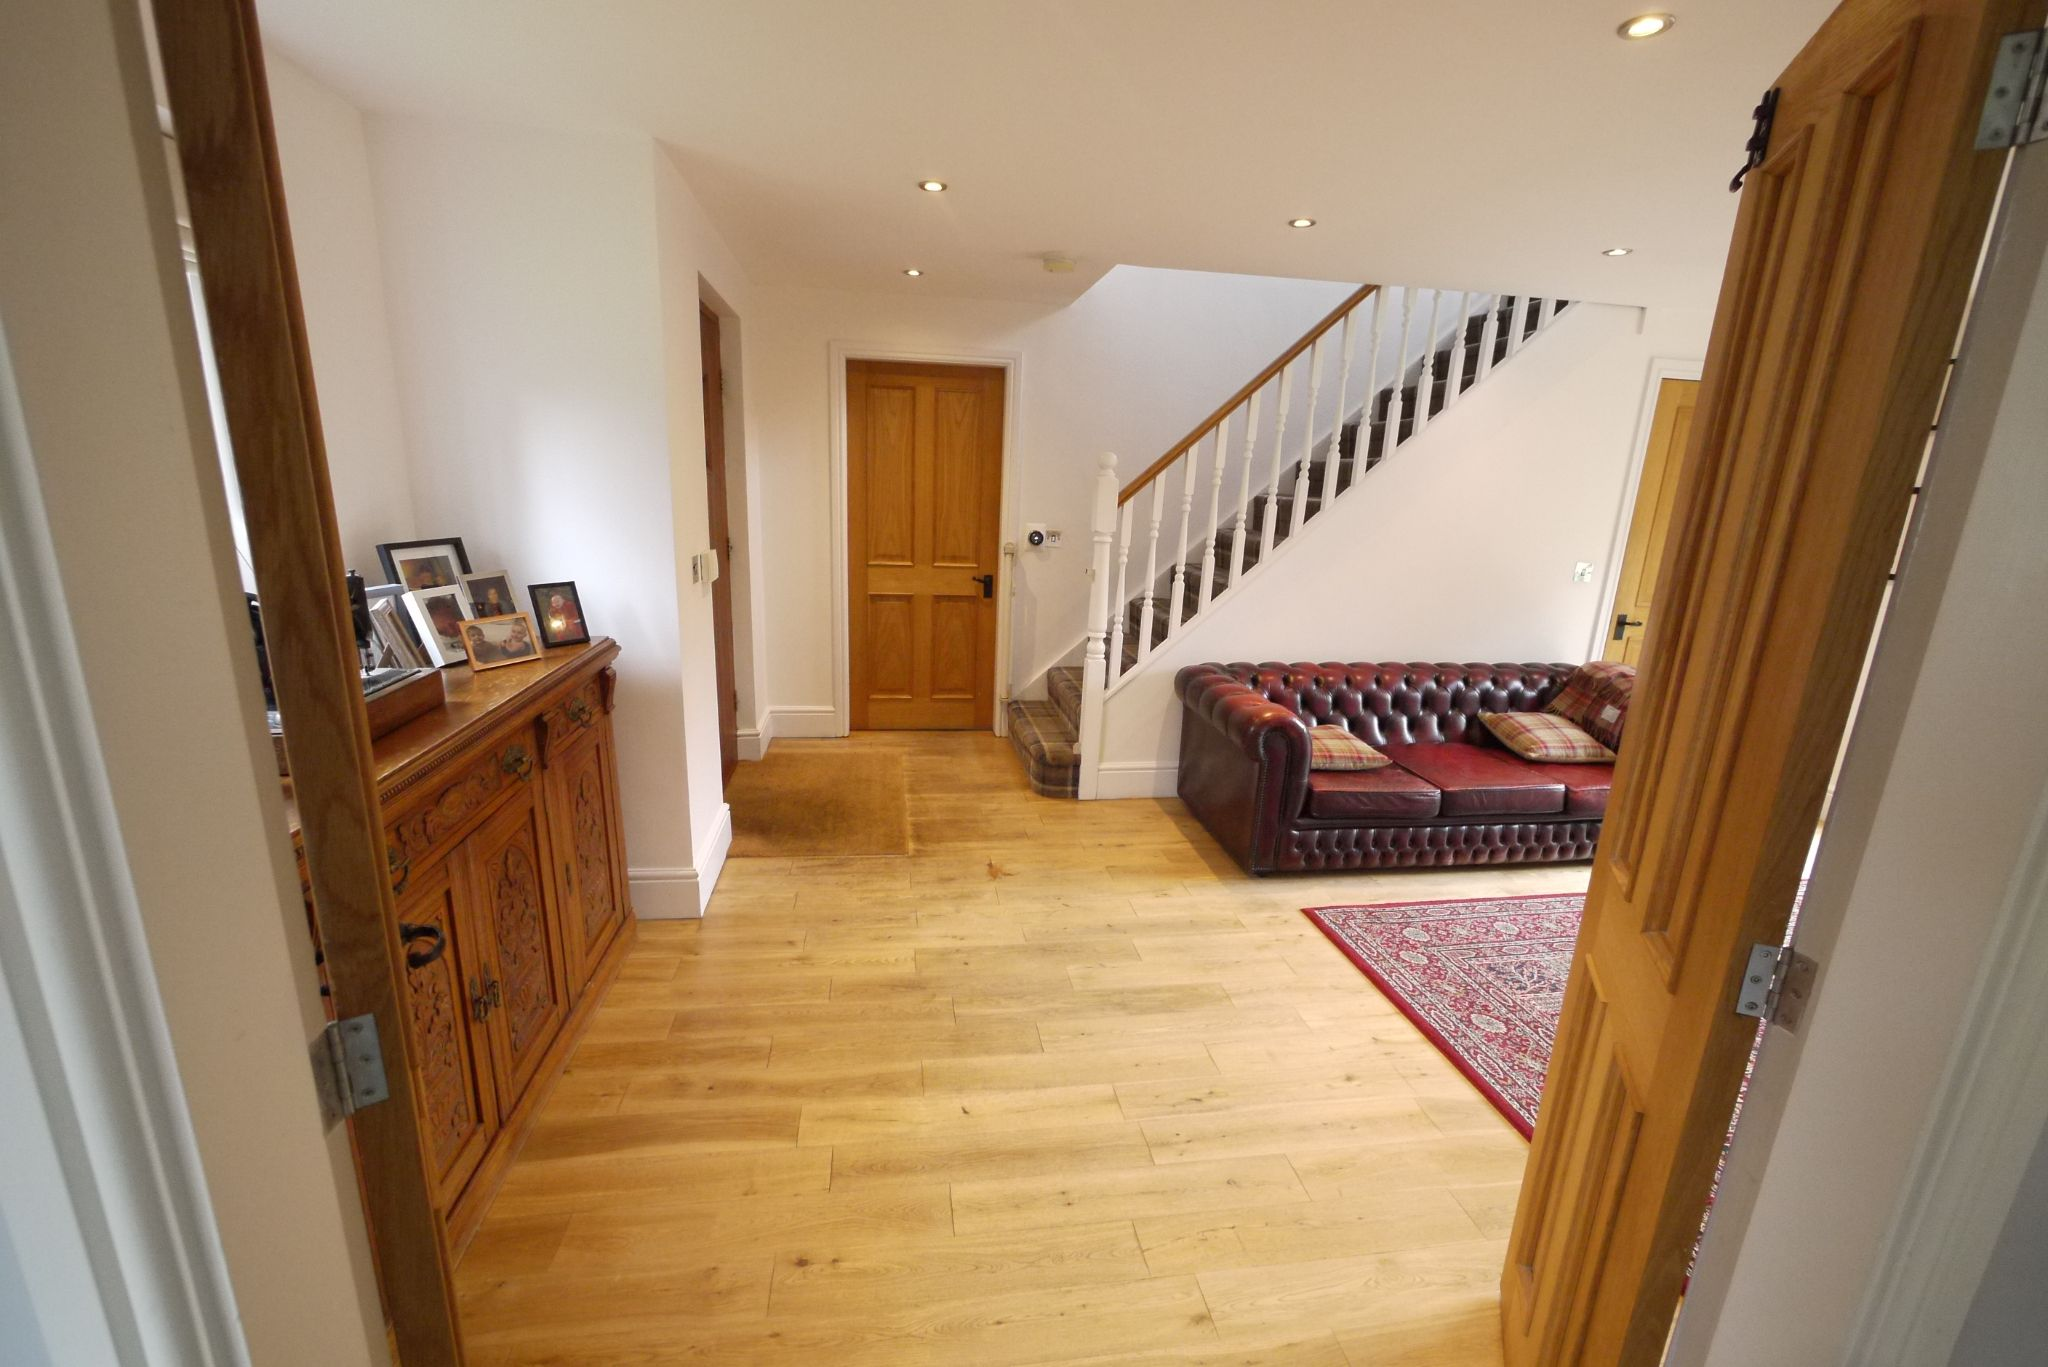 4 bedroom detached house For Sale in Brighouse - Photograph 20.